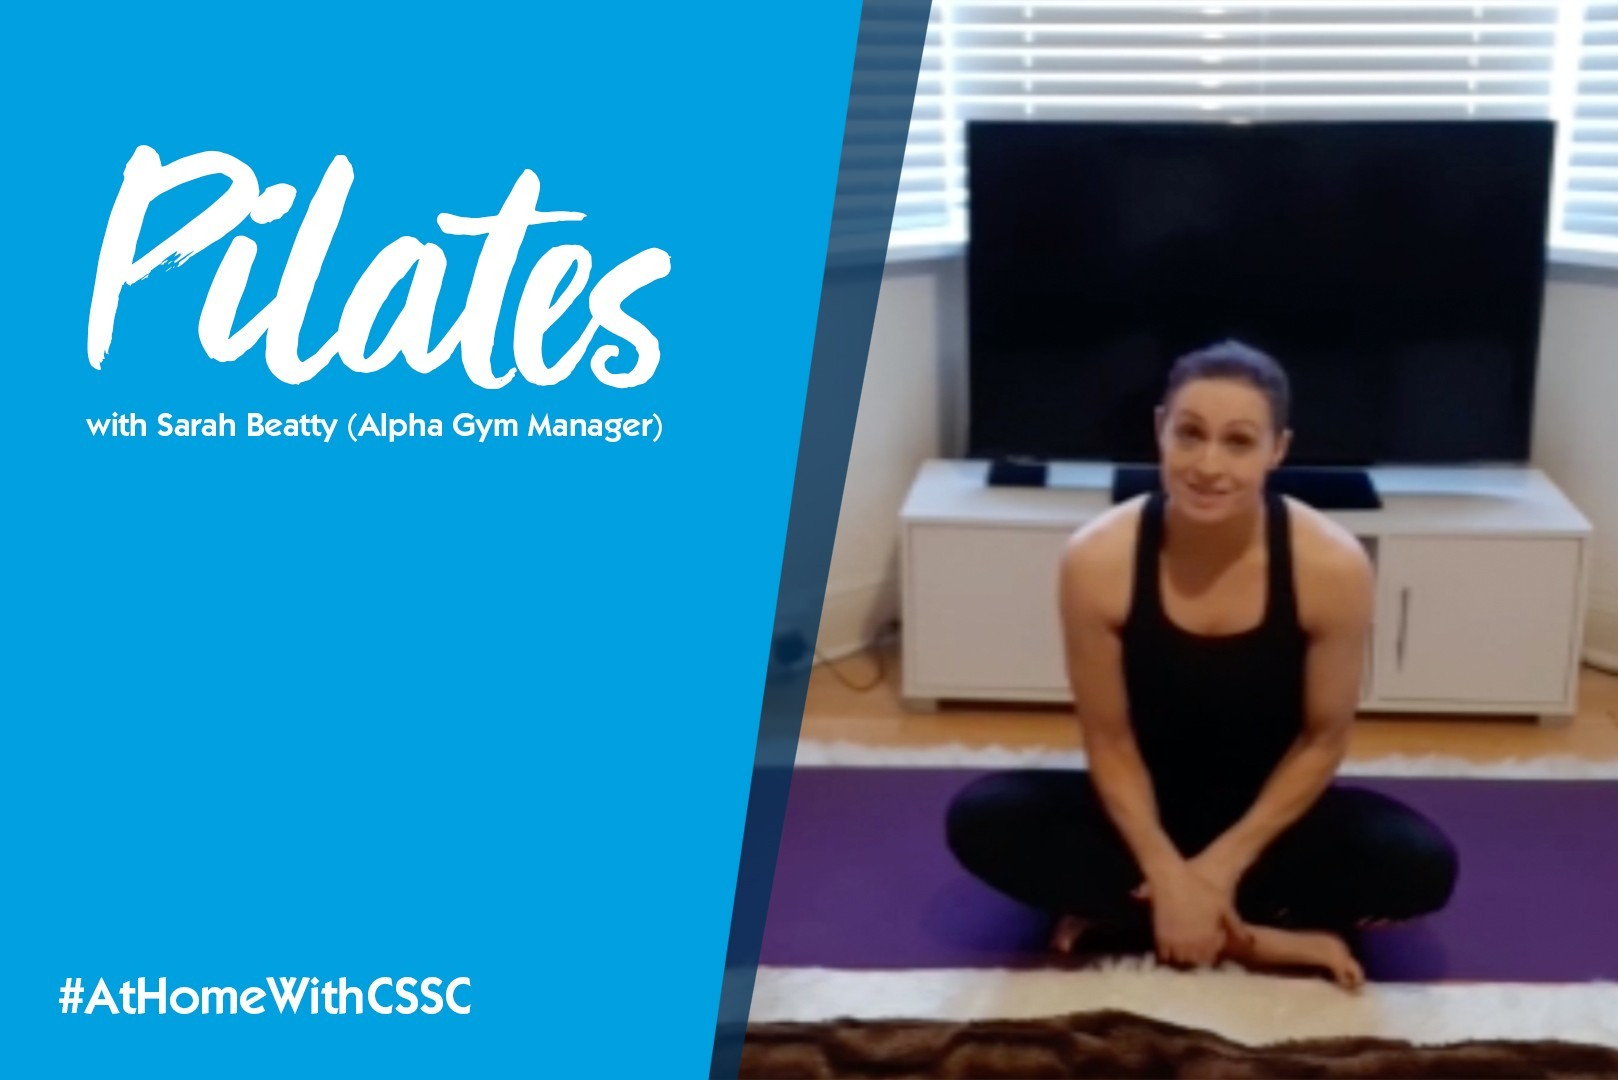 Pilates instructor taking a virtual class with a textual overlay cover the left side of the screen